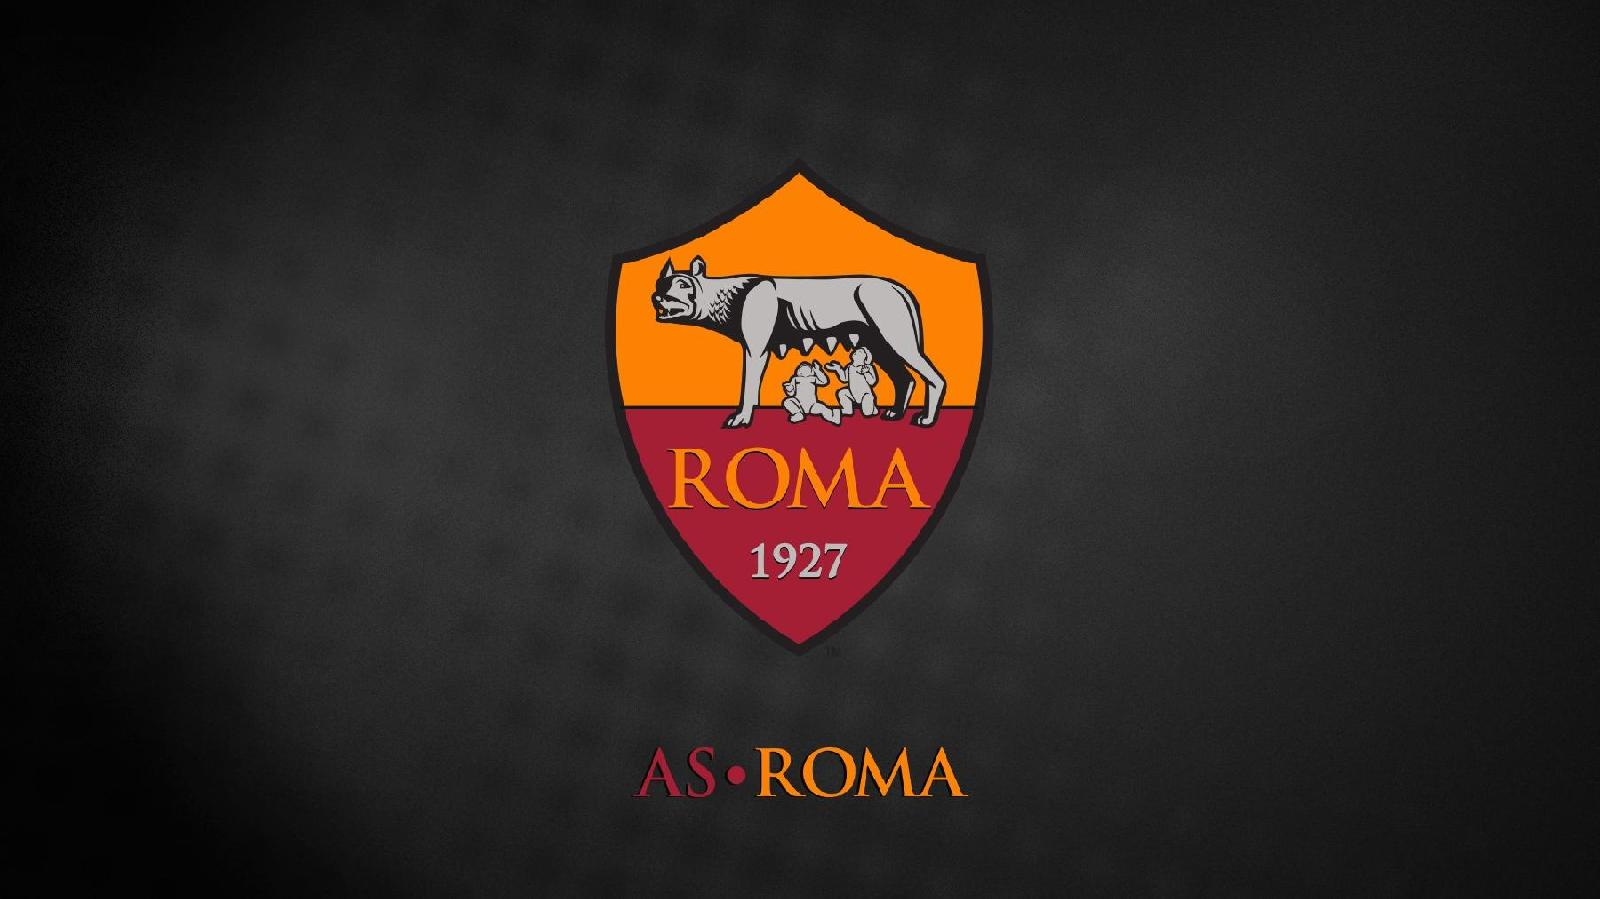 KB88.com diventa betting partner ufficiale dell'AS Roma per l'Asia